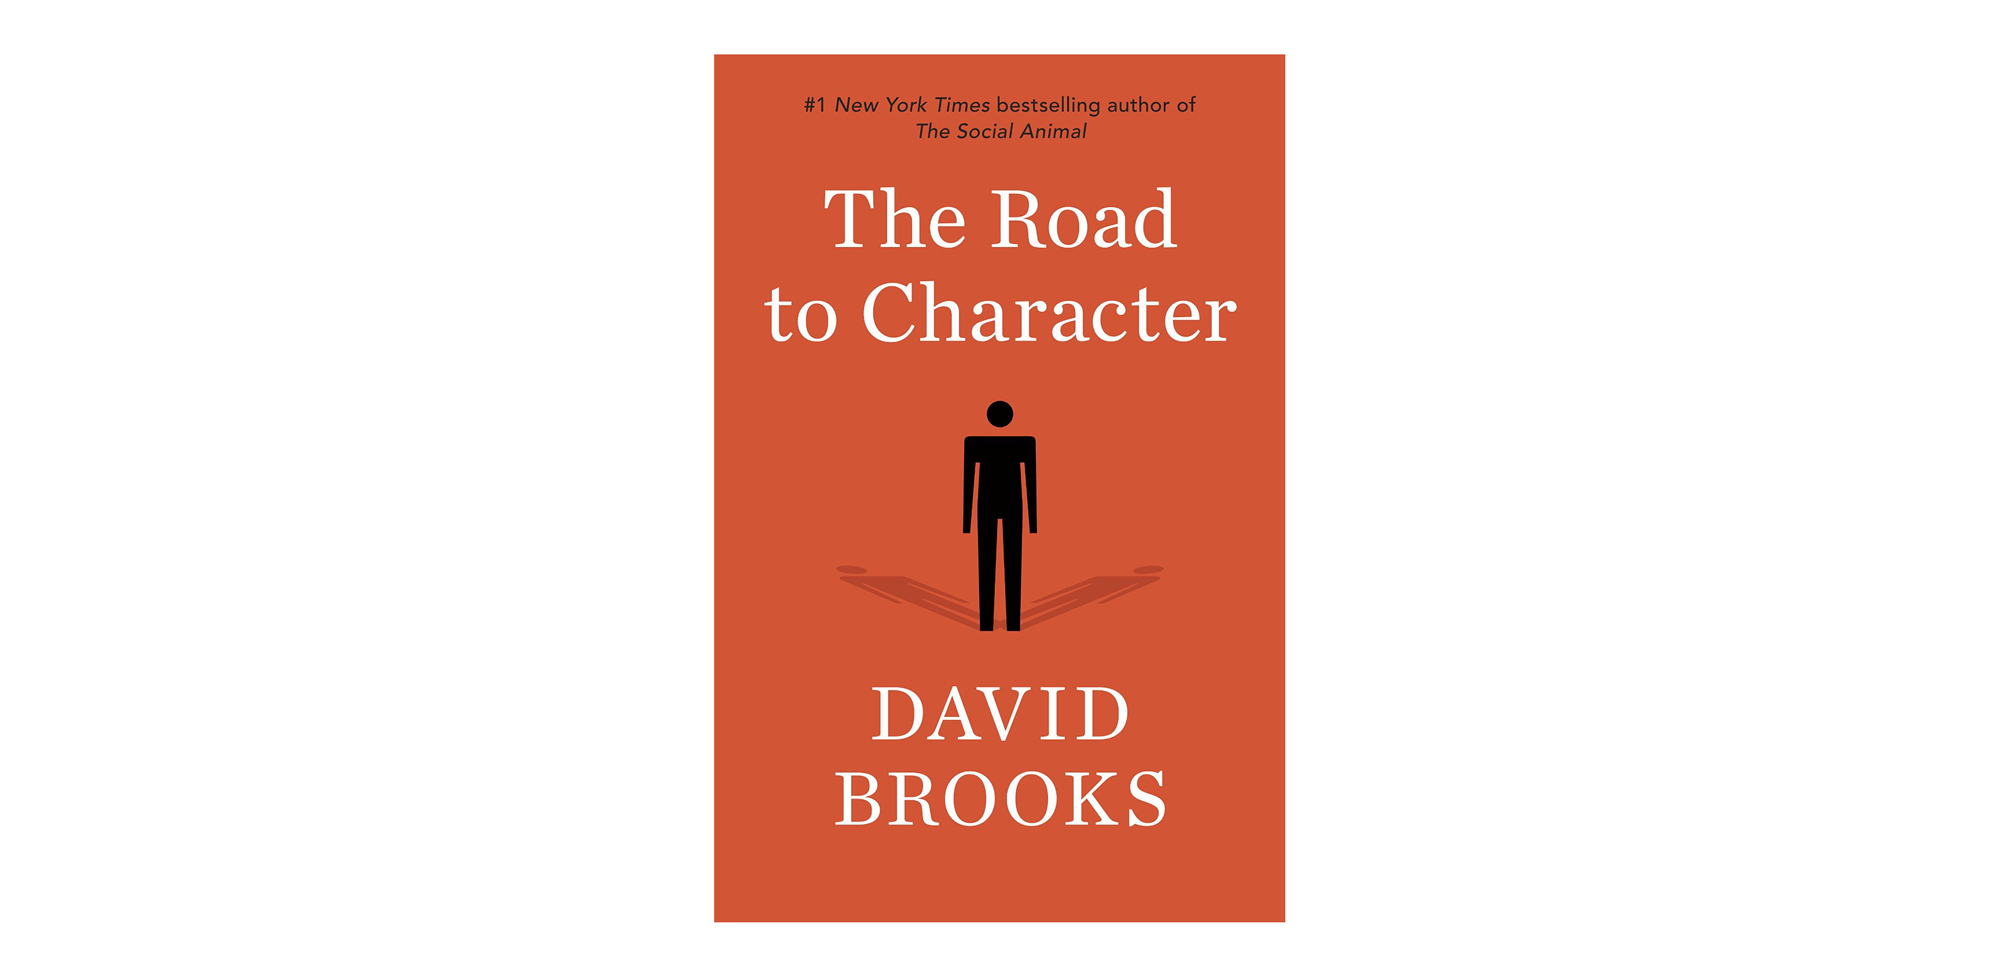 The Road to Character, by David Brooks